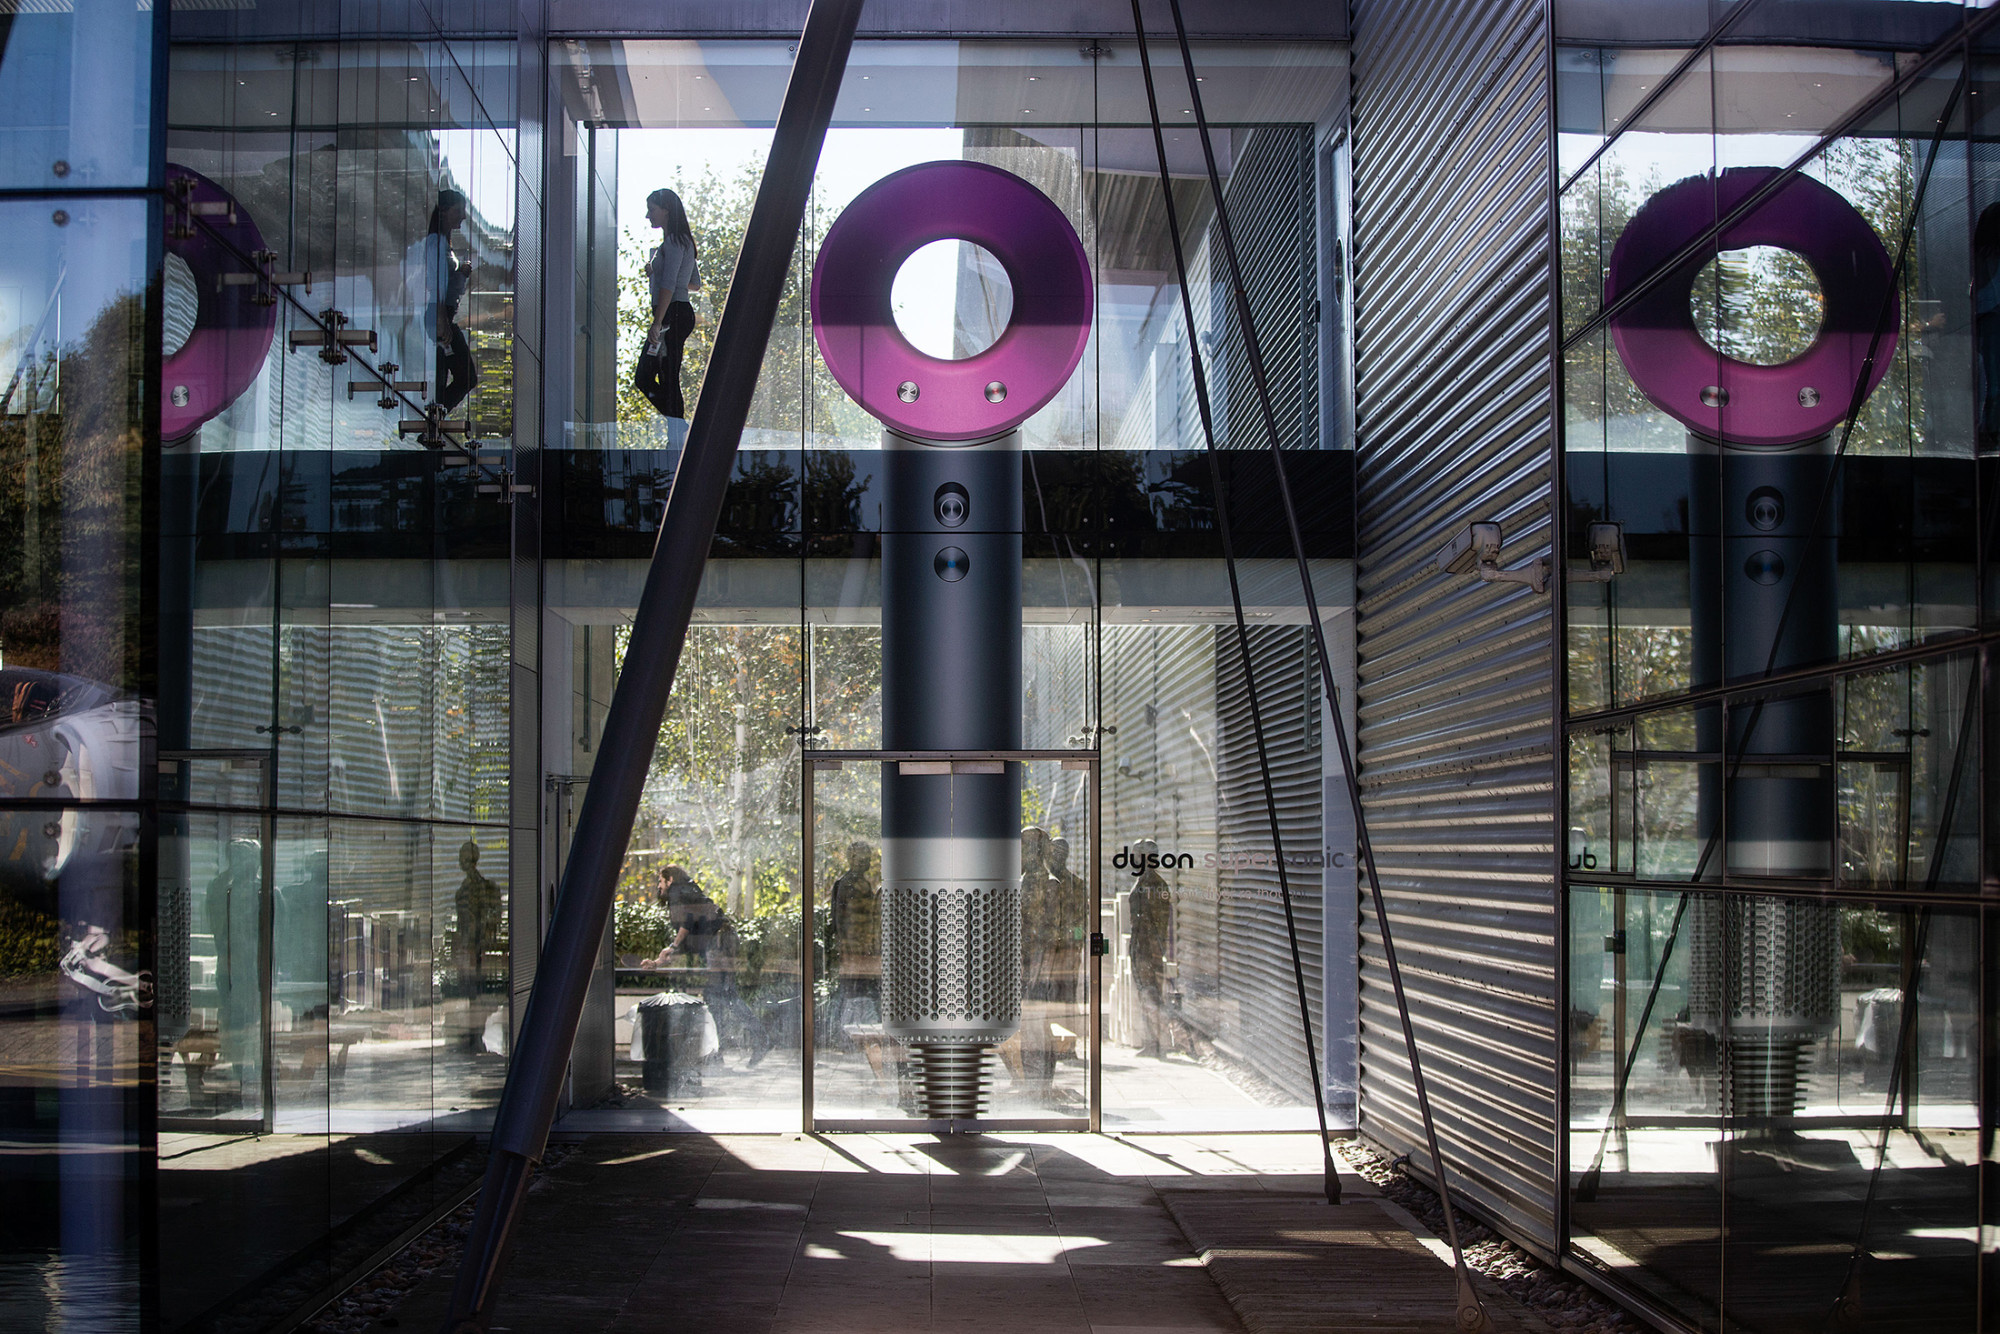 Dyson Expands in UK With New Technology Campus